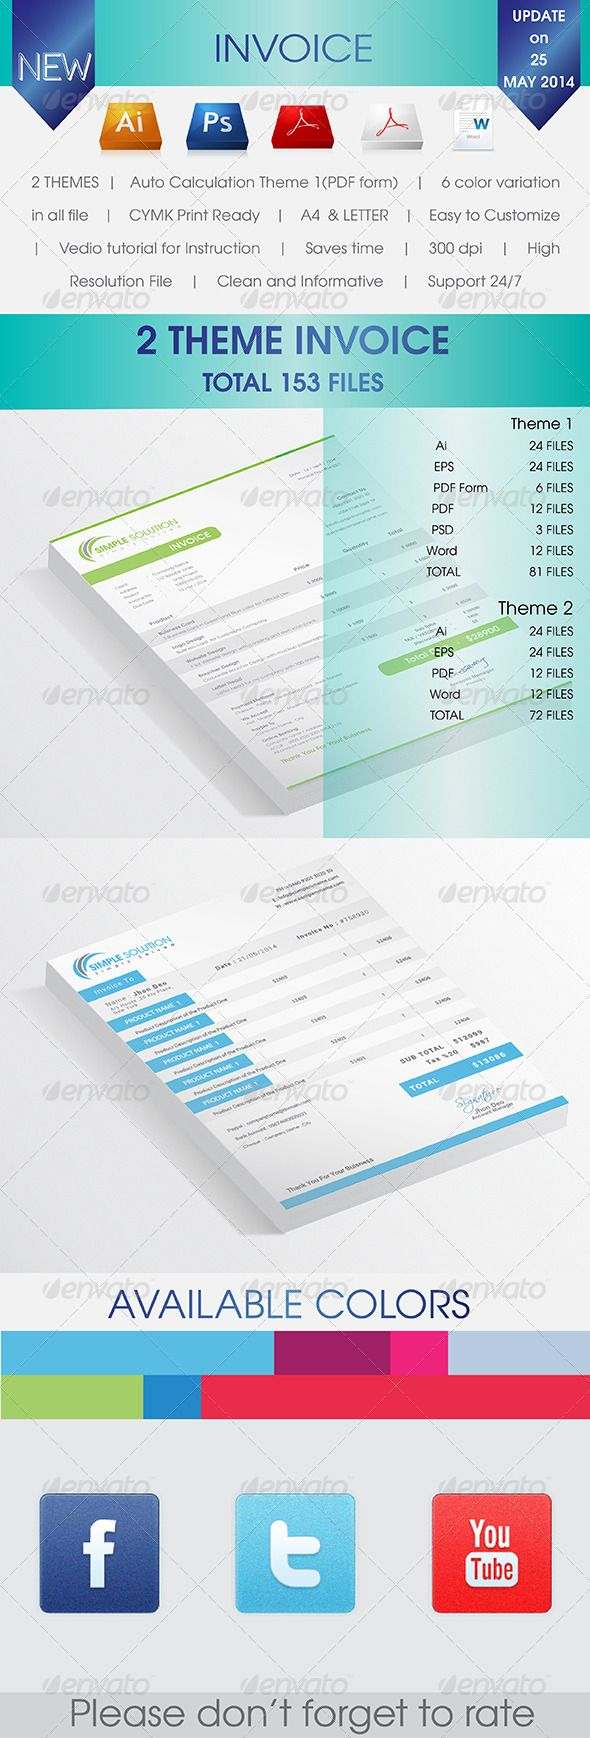 A A Invoice Black Blue Clean Creative Customizable Excel